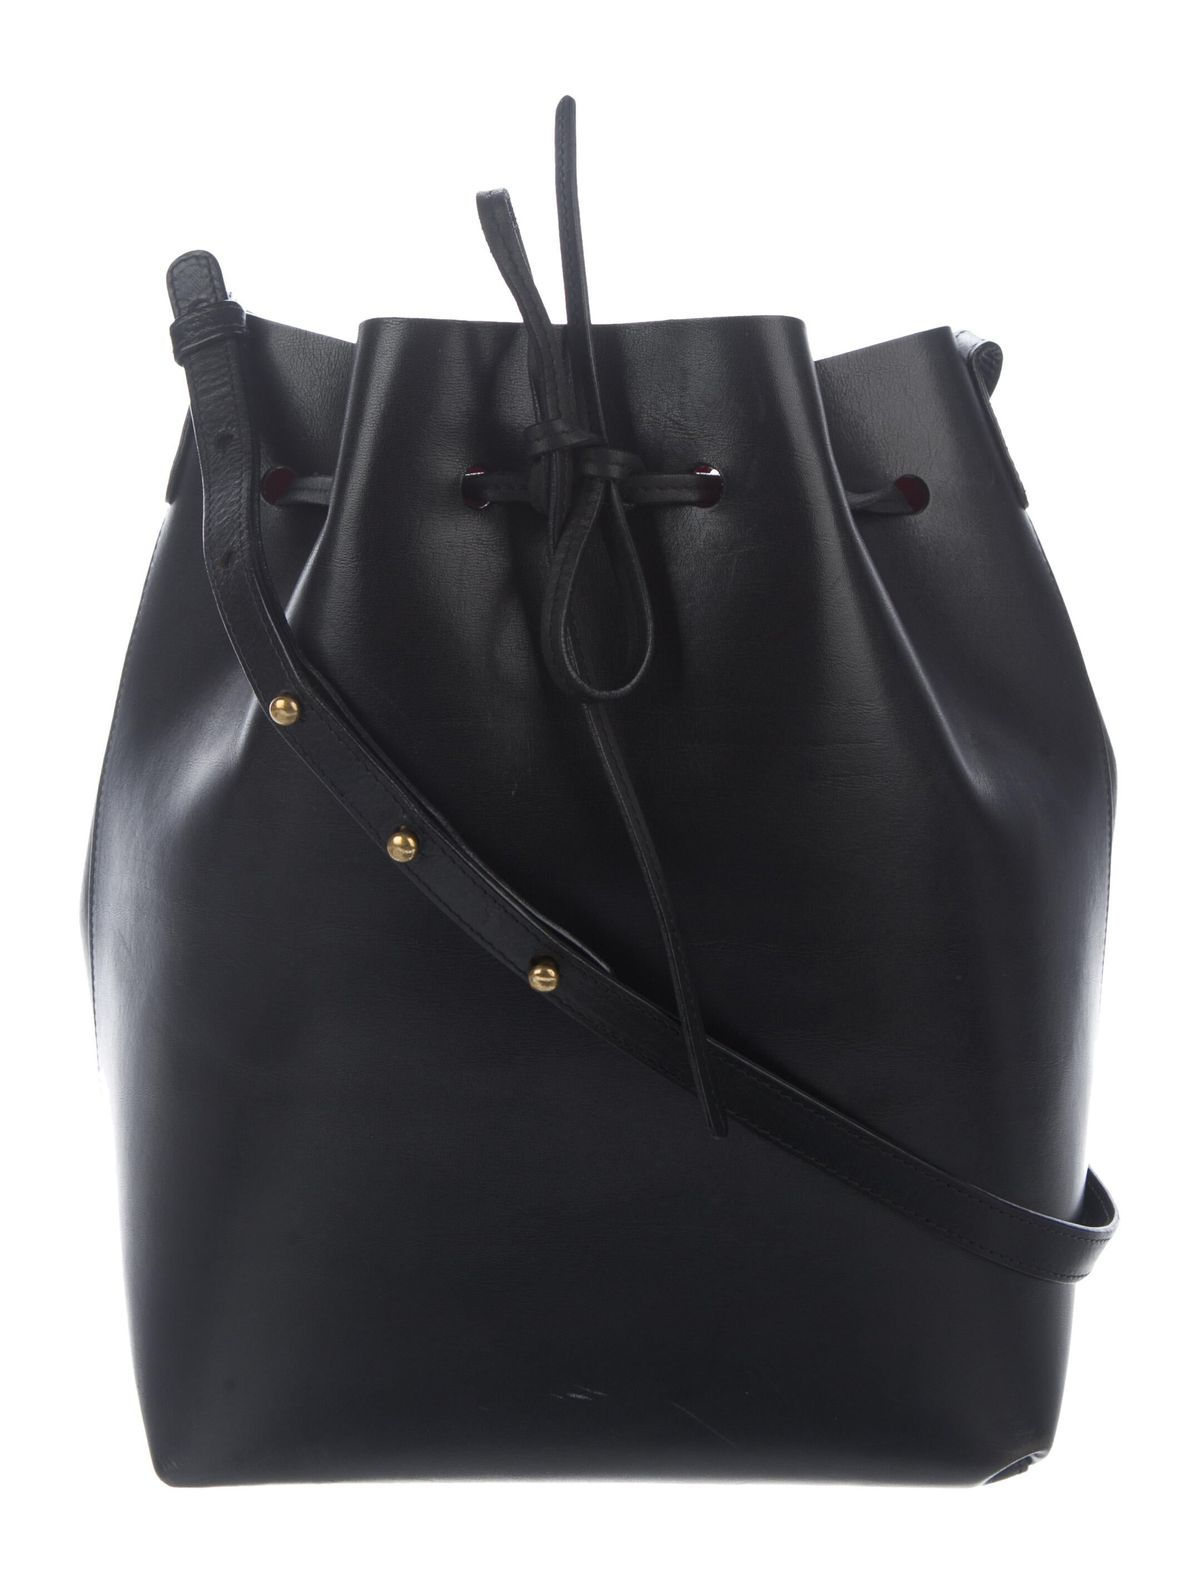 the real real consigned Black vegetable-tanned leather Mansur Gavriel bucket bag with gold-tone hardware, adjustable flat shoulder strap, foil-stamped logo at front, Flamma matte patent leather interior and drawstring closure at top. Includes zip pouch